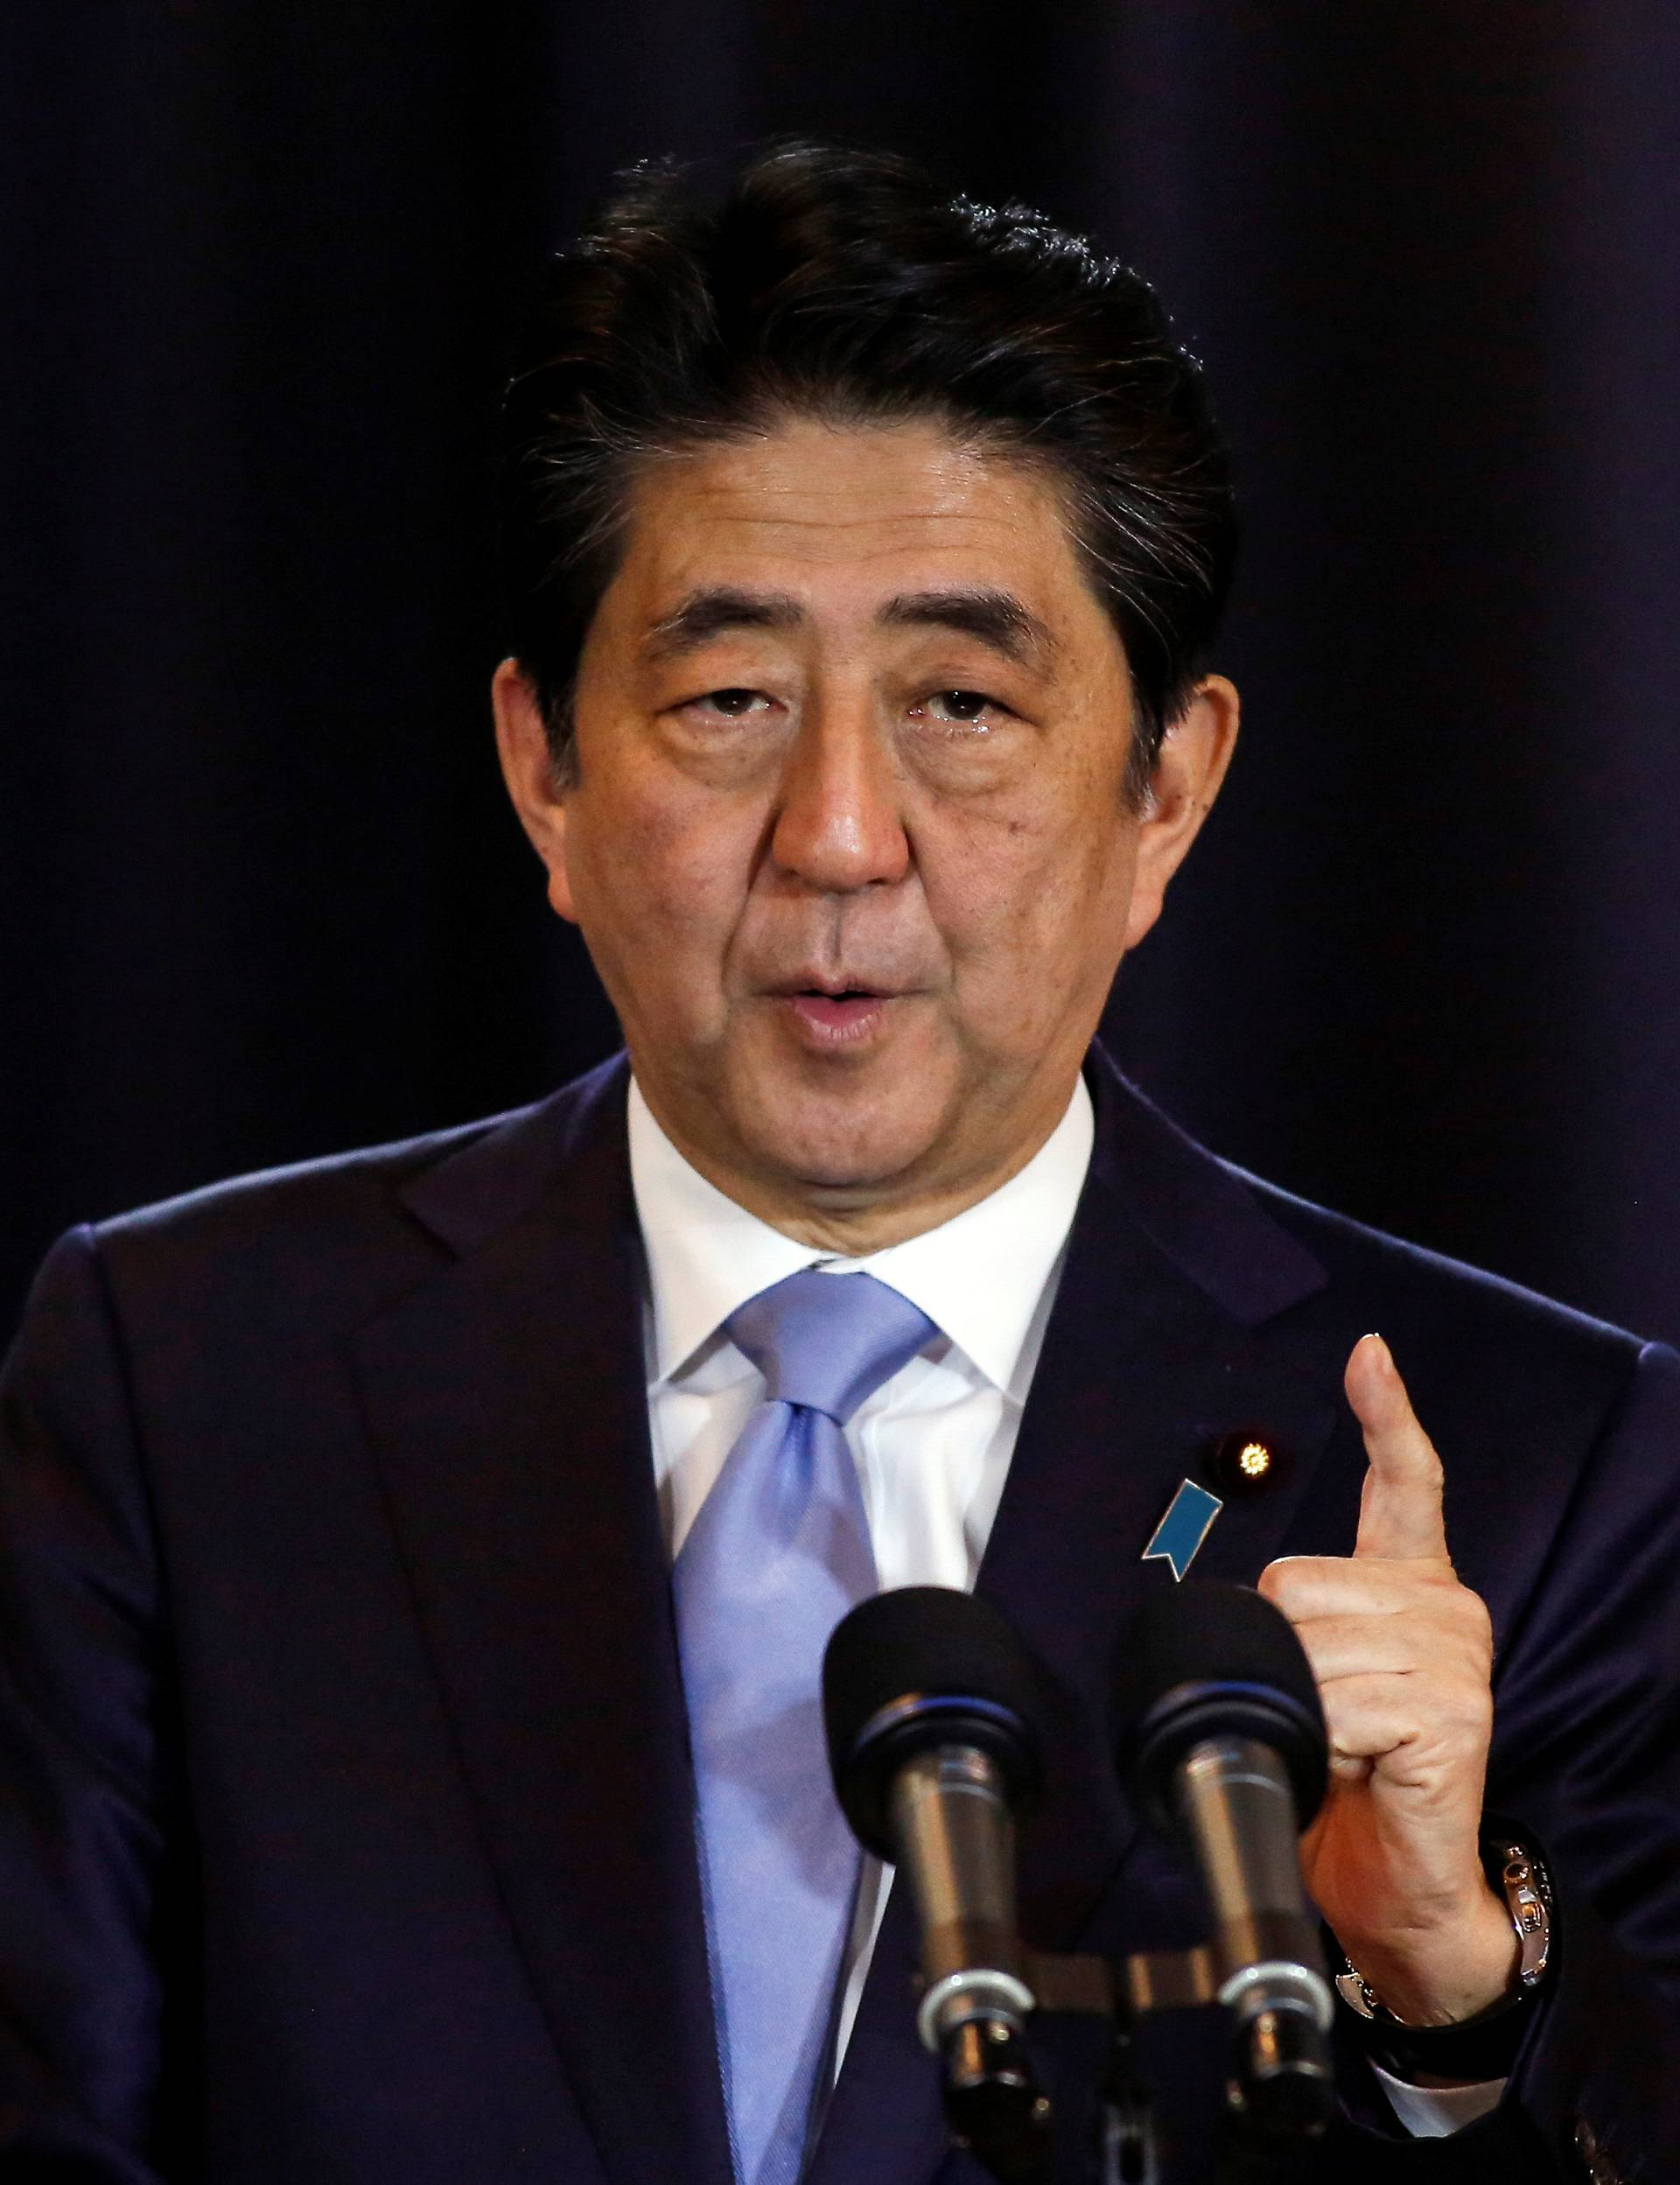 Japanese PM Shinzo Abe gestures during a press conference in Buenos Aires, Argentina